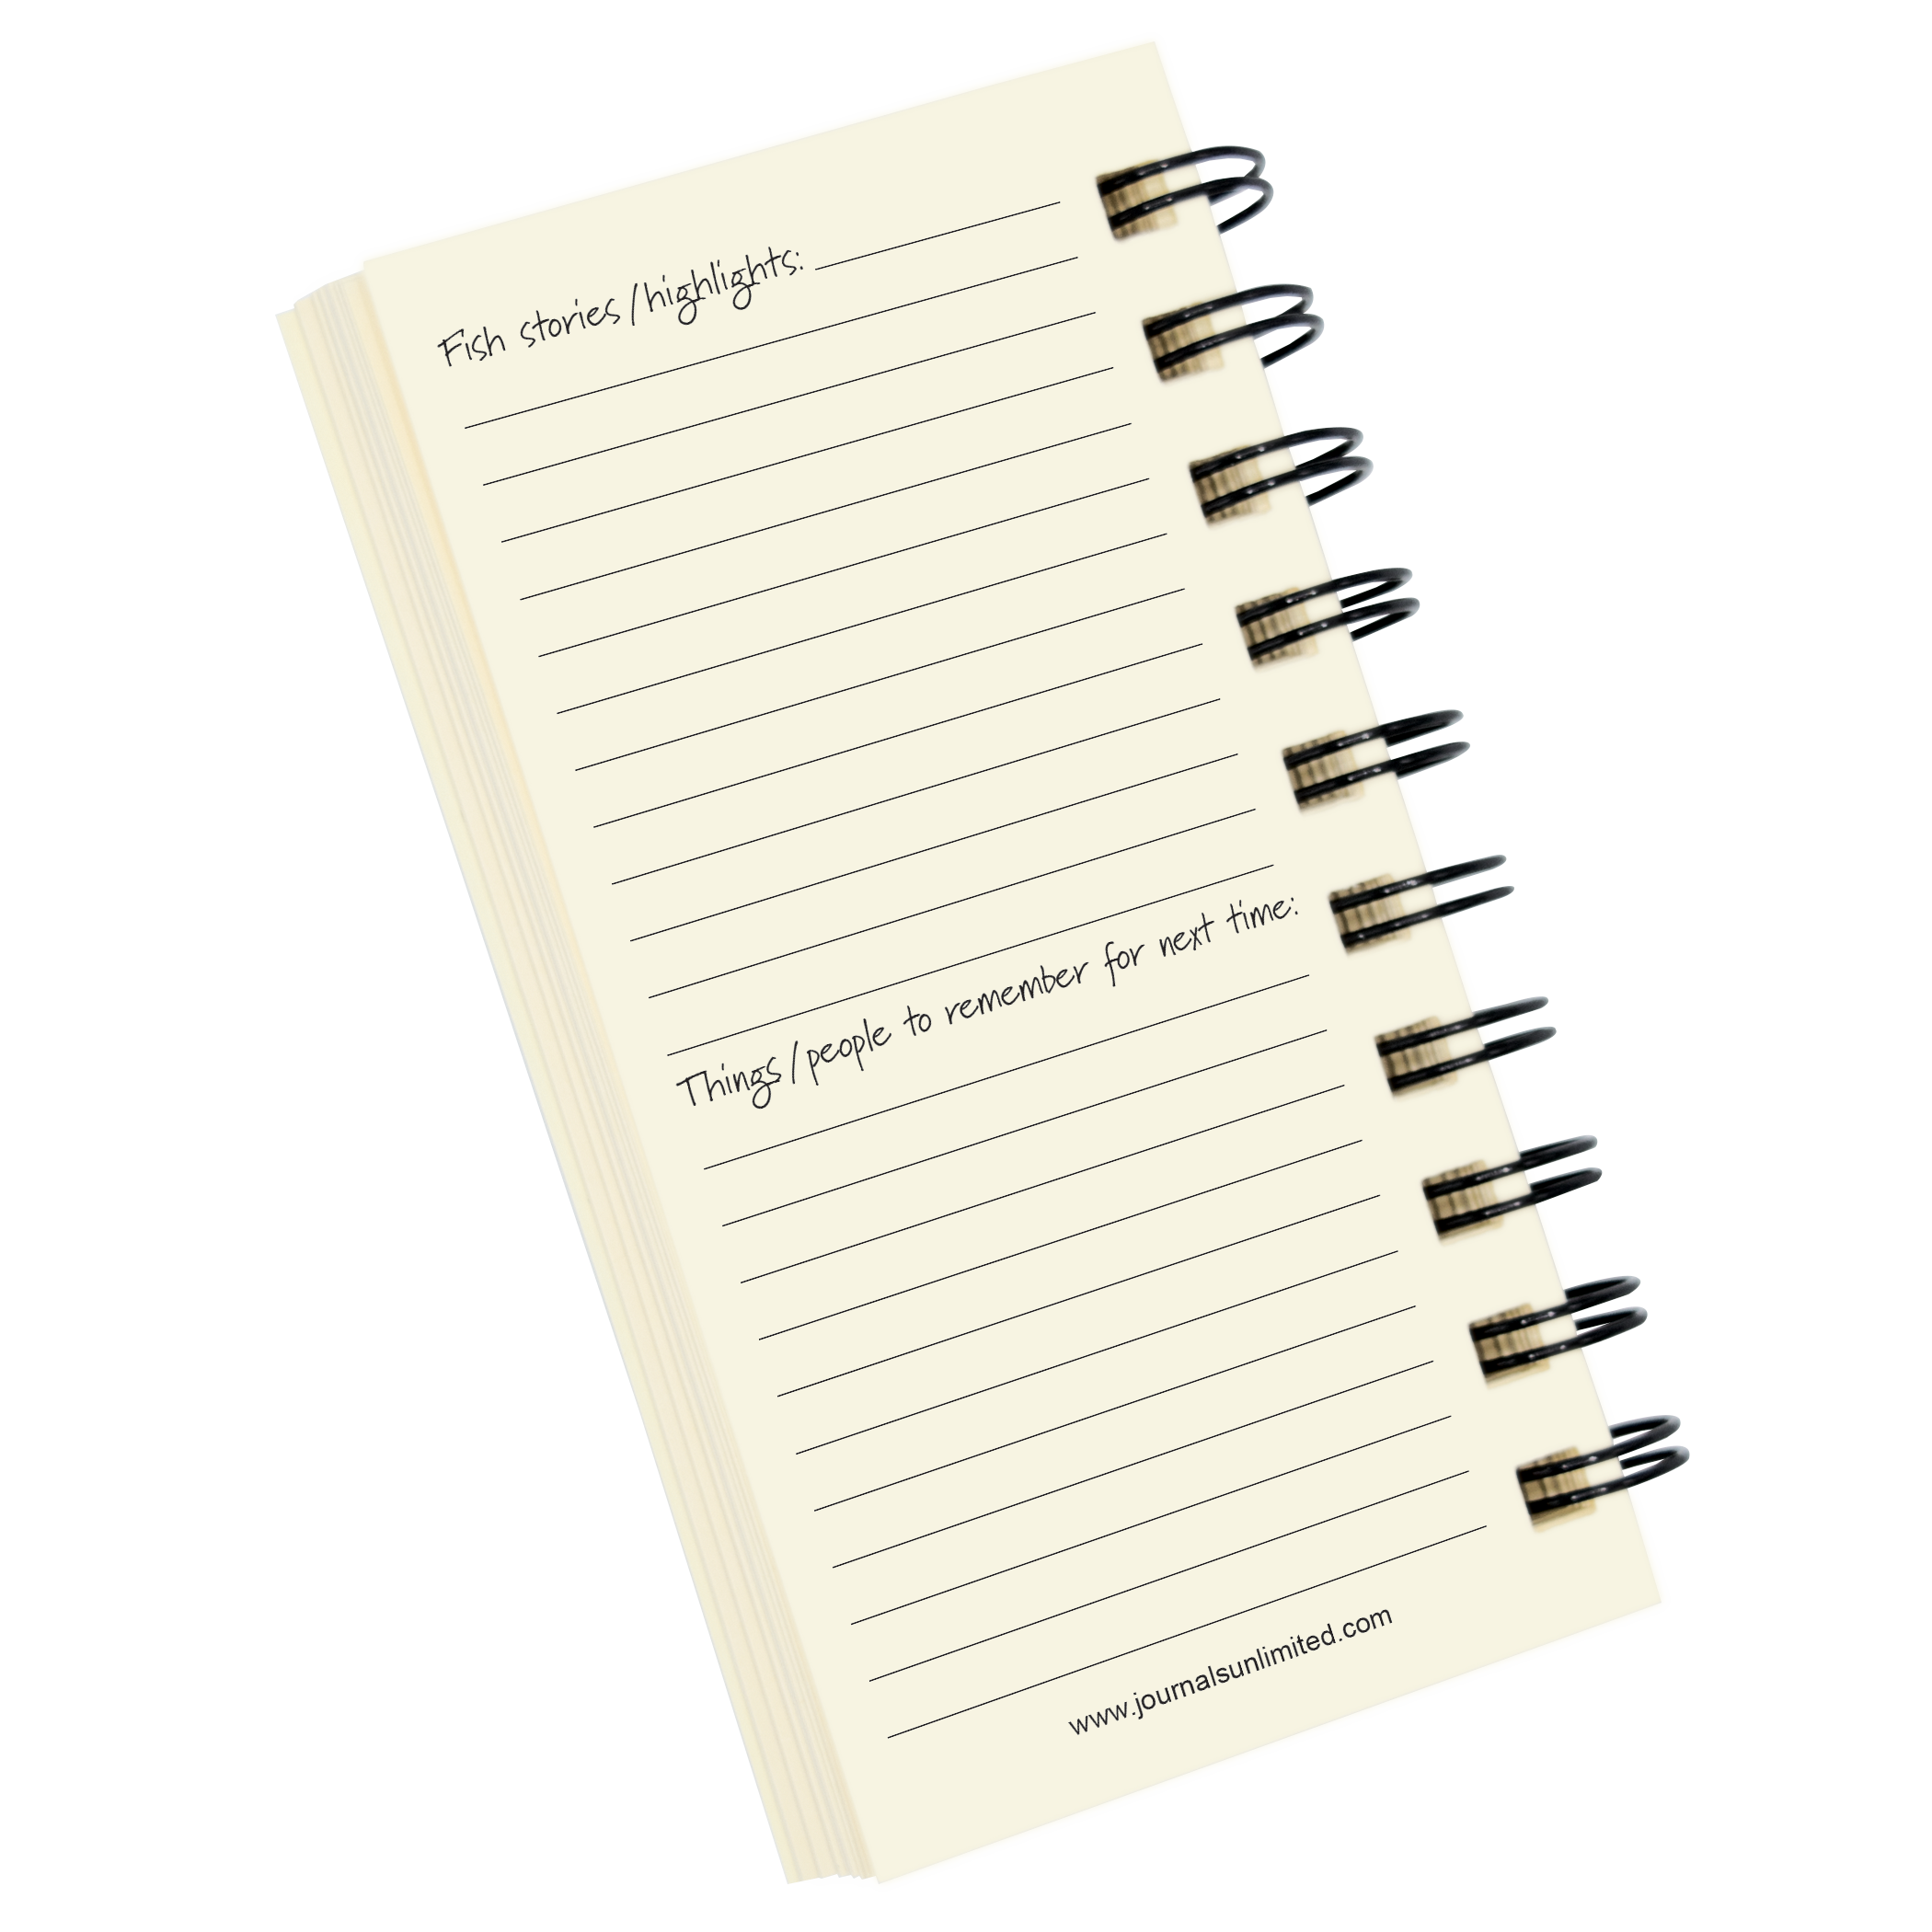 Fly fishing mini journal journals unlimited inc for Fly fishing journal